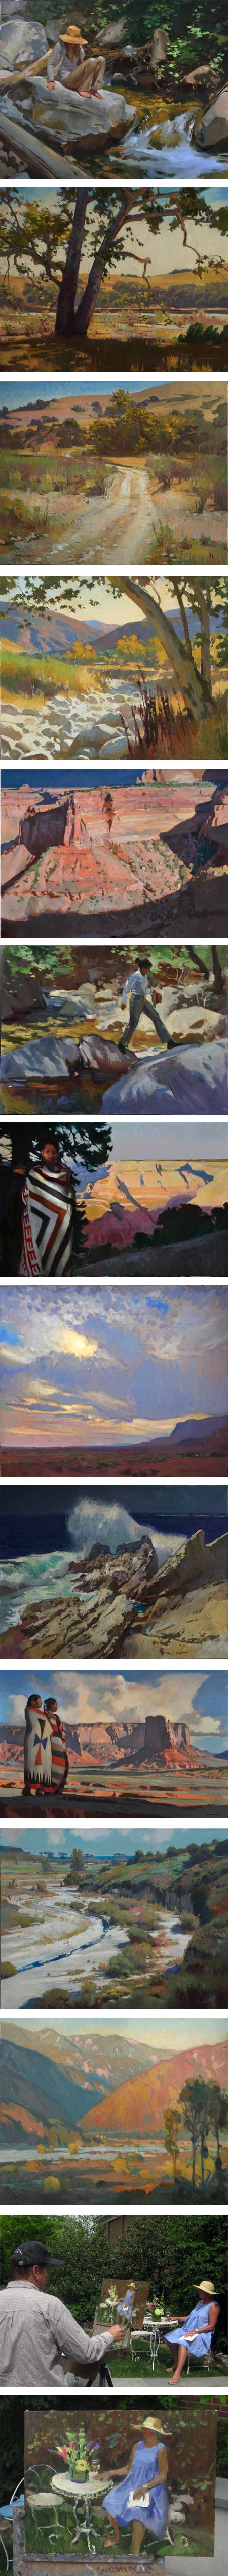 Reay Roberts, plein air landscapes and figures